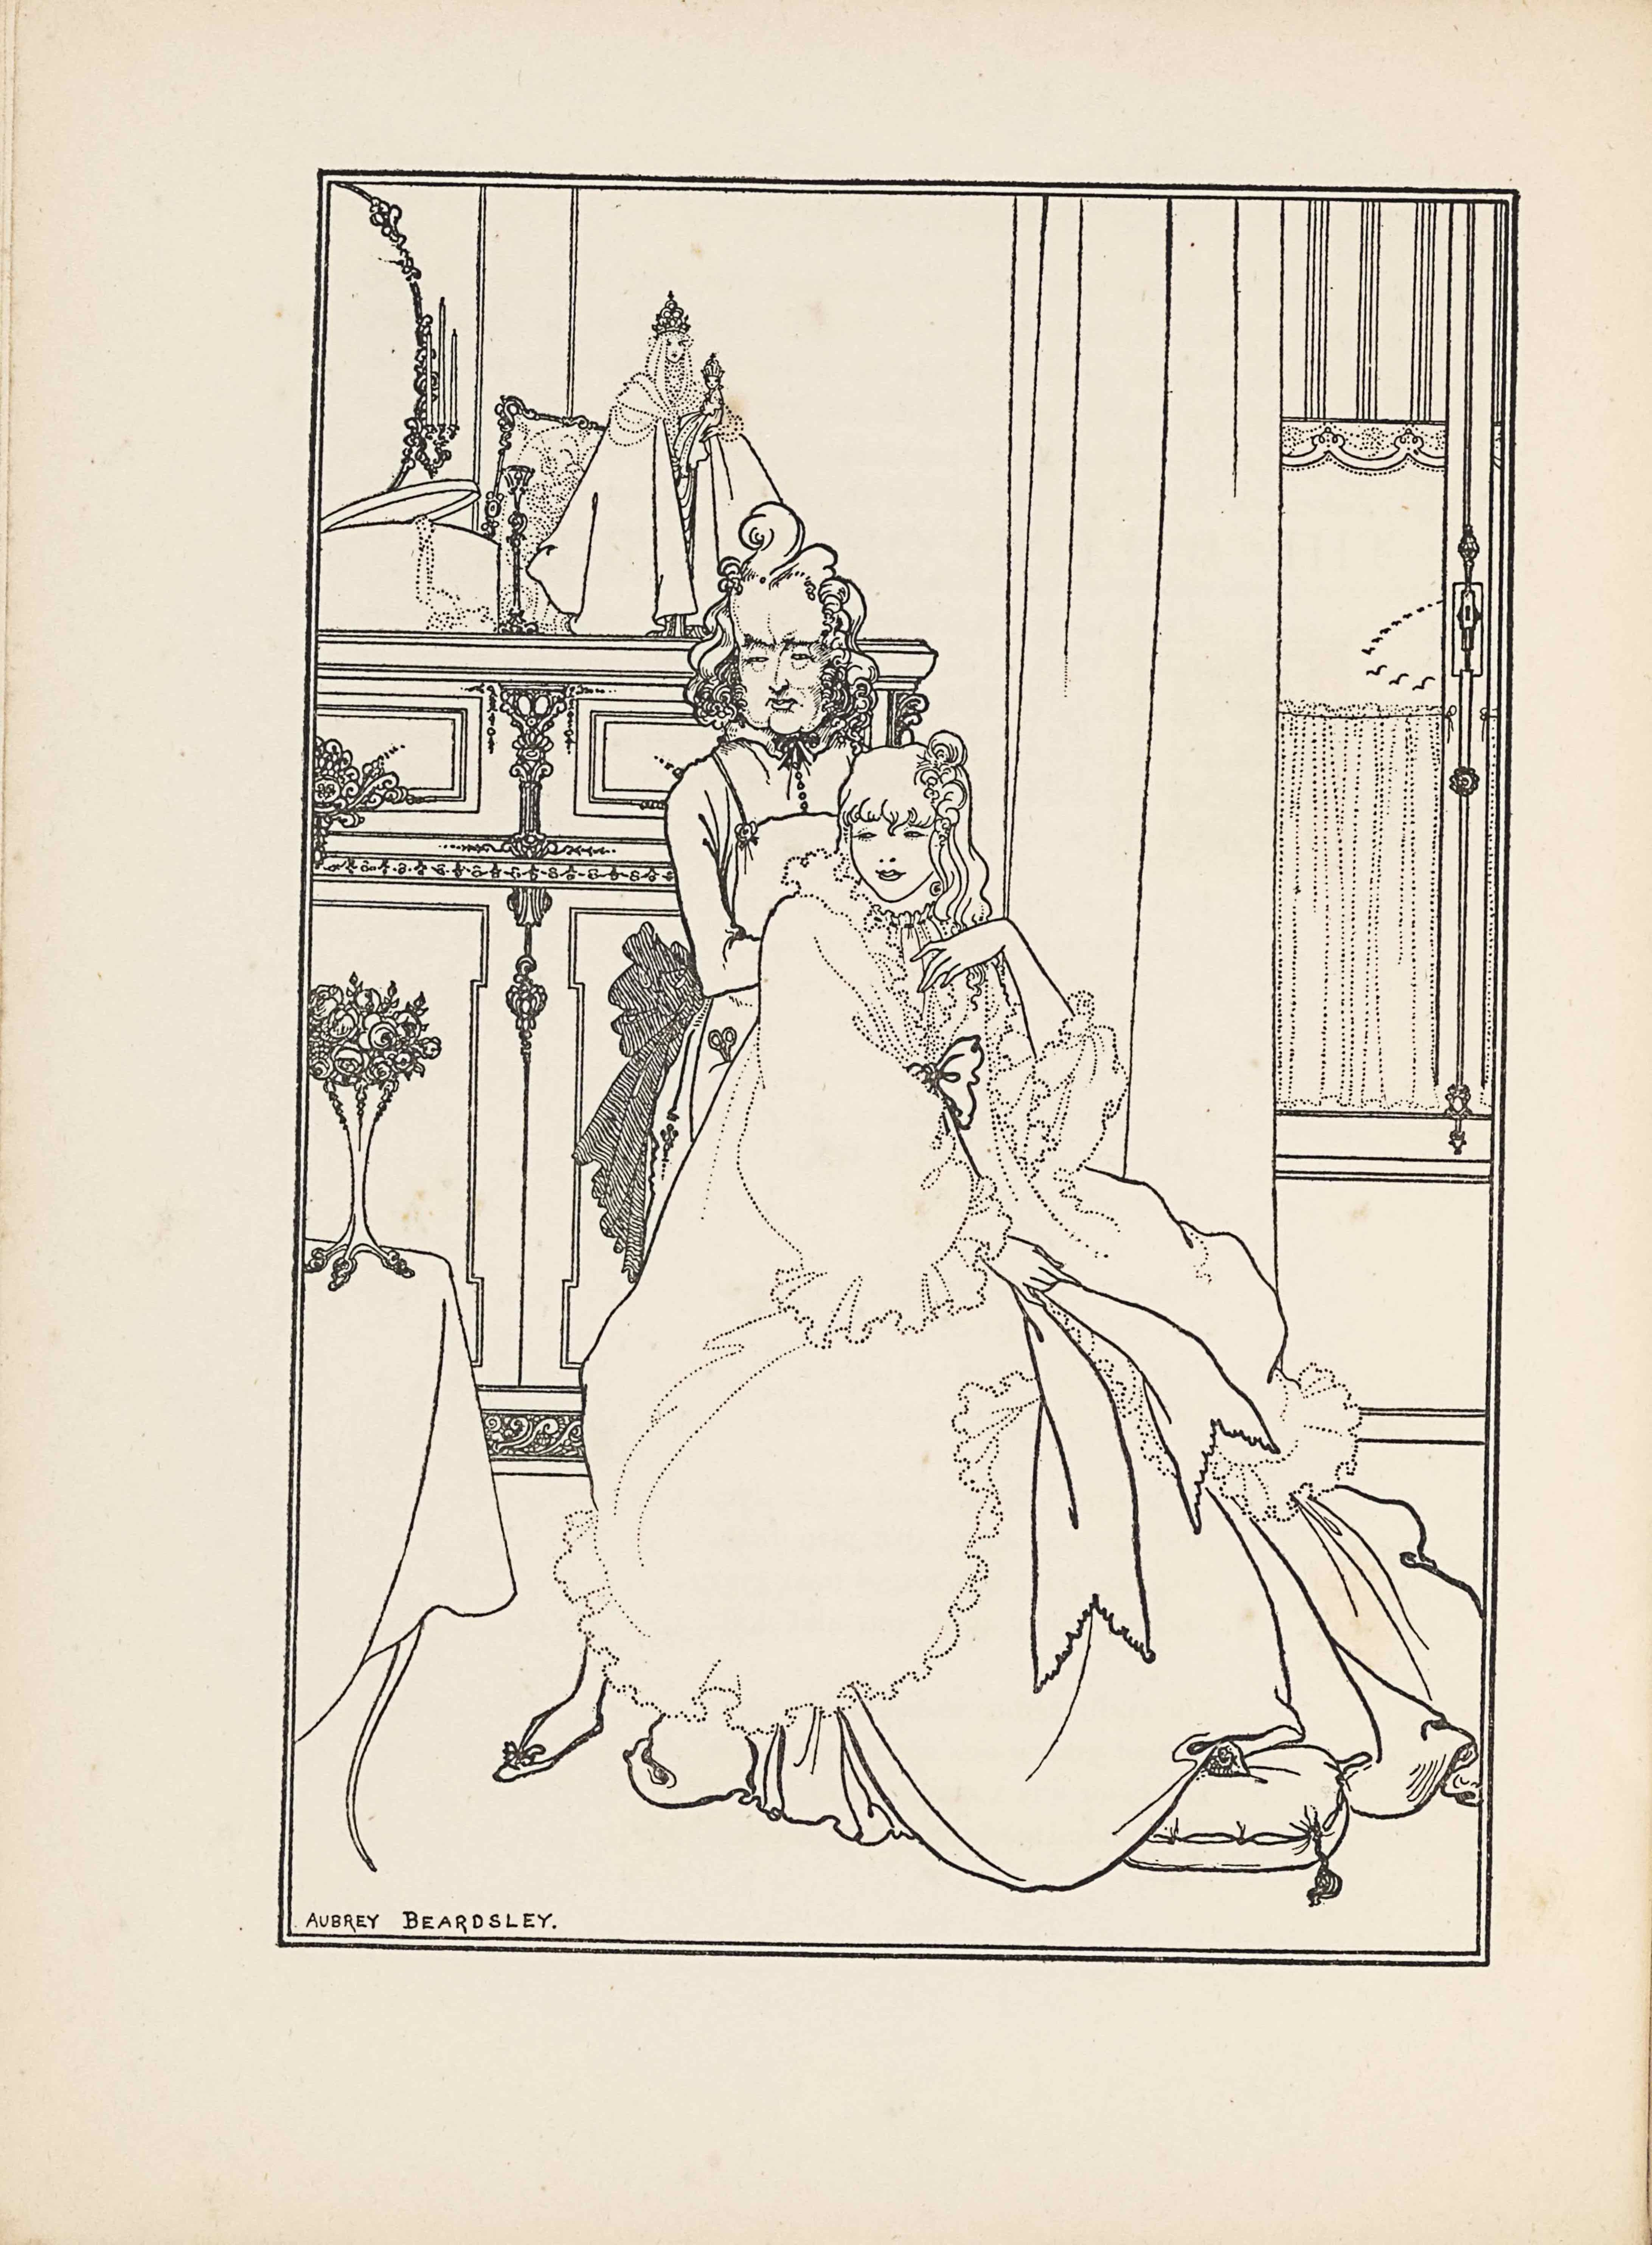 "This line-block reproduction of Beardsley's pen-and-ink drawing is in portrait orientation, facing the poem by Bardsley it illustrates, ""The Ballad of a Barber,"" on p. 91. The image shows a seated woman or girl (""The Princess"") facing the viewer, with a male figure (the barber) standing behind her. They are shown inside a dressing room, with a small religious figurine standing on the fireplace mantel behind them. In the foreground and to the left is the edge of a table. The table has one plain curved leg sticking out from underneath a white tablecloth that falls nearly to the ground. On top of the table is a small three-footed vase containing a bouquet of small roses and leaves. To the right of the table in the foreground is the woman sitting on a chair, turned to face slightly to the right, but with her directly to the viewer. She is wearing a large ruffled dressing gown; one big bow tied at her chest has long ribbons extending down to her knees. Her feet rest on a tasseled pillow on the floor. Her right hand rests on her lap while her left hand is lifted to her chin. Her mouth is slightly opened and her eyes look to the left side of the page. She has mid-length wavy hair with a little hairpiece on the left side of the top of her head. The headpiece is a small clip of swirled material. Behind her and to the left on the page is a standing male figure, the barber. His right foot sticks out to the left of the woman's skirt, wearing a small slipper with a bow at the toe. He is wearing an apron with a pocket containing a pair of scissors. He has a button-up shirt with a black bow-tie underneath the apron, which is tied with a large dark coloured bow. The barber also has a slightly opened mouth and a crease between his brows. His hair is elaborately coiffed with a pompadour and waves at the side. Behind and to the left in the background is a fireplace mantel that is ornamented with swirling lines. On top of the mantle is a half visible oval shaped mirror with a slightly ornamented edge. In front and to the right of the mirror is a hat box that has its lid slightly off-kilter and a string of pearls hanging out off the edge. To the right of the box on the mantle is a candlestick holder. There is a little picture frame balanced on its bottom right corner and leaned against the wall. In front of that frame is a small female figurine standing on the mantle. She is wearing a robe or cape that falls widely around her. She has light and straight short hair and is wearing a crown. She has her left arm extended out in front of her holding a baby [this could be a religious statuette of the Madonna and Child]. The baby's body appears in profile facing to the left side of the page, but the baby's head is turned to face the viewer. The baby has on a long gown and also is wearing a crown. To the right of the mantle is a plain and light coloured curtain hanging down the side of a small window. The window and its surrounding draperies start just above the floor edge and extend past the picture frame. The window has a delineation in the middle of wood framing with an ornamented stick and a small box in the centre. The window has a frilly half-curtain covering the bottom half and an ornamental blind on the top, with a fringed valance. In the small bit of visible window there is a trail of birds flying in a curved line in the distance. In the bottom left corner is the artist's signature:: ""AUBREY BEARDSLEY."" [caps]. The image is framed by a double-lined edge."